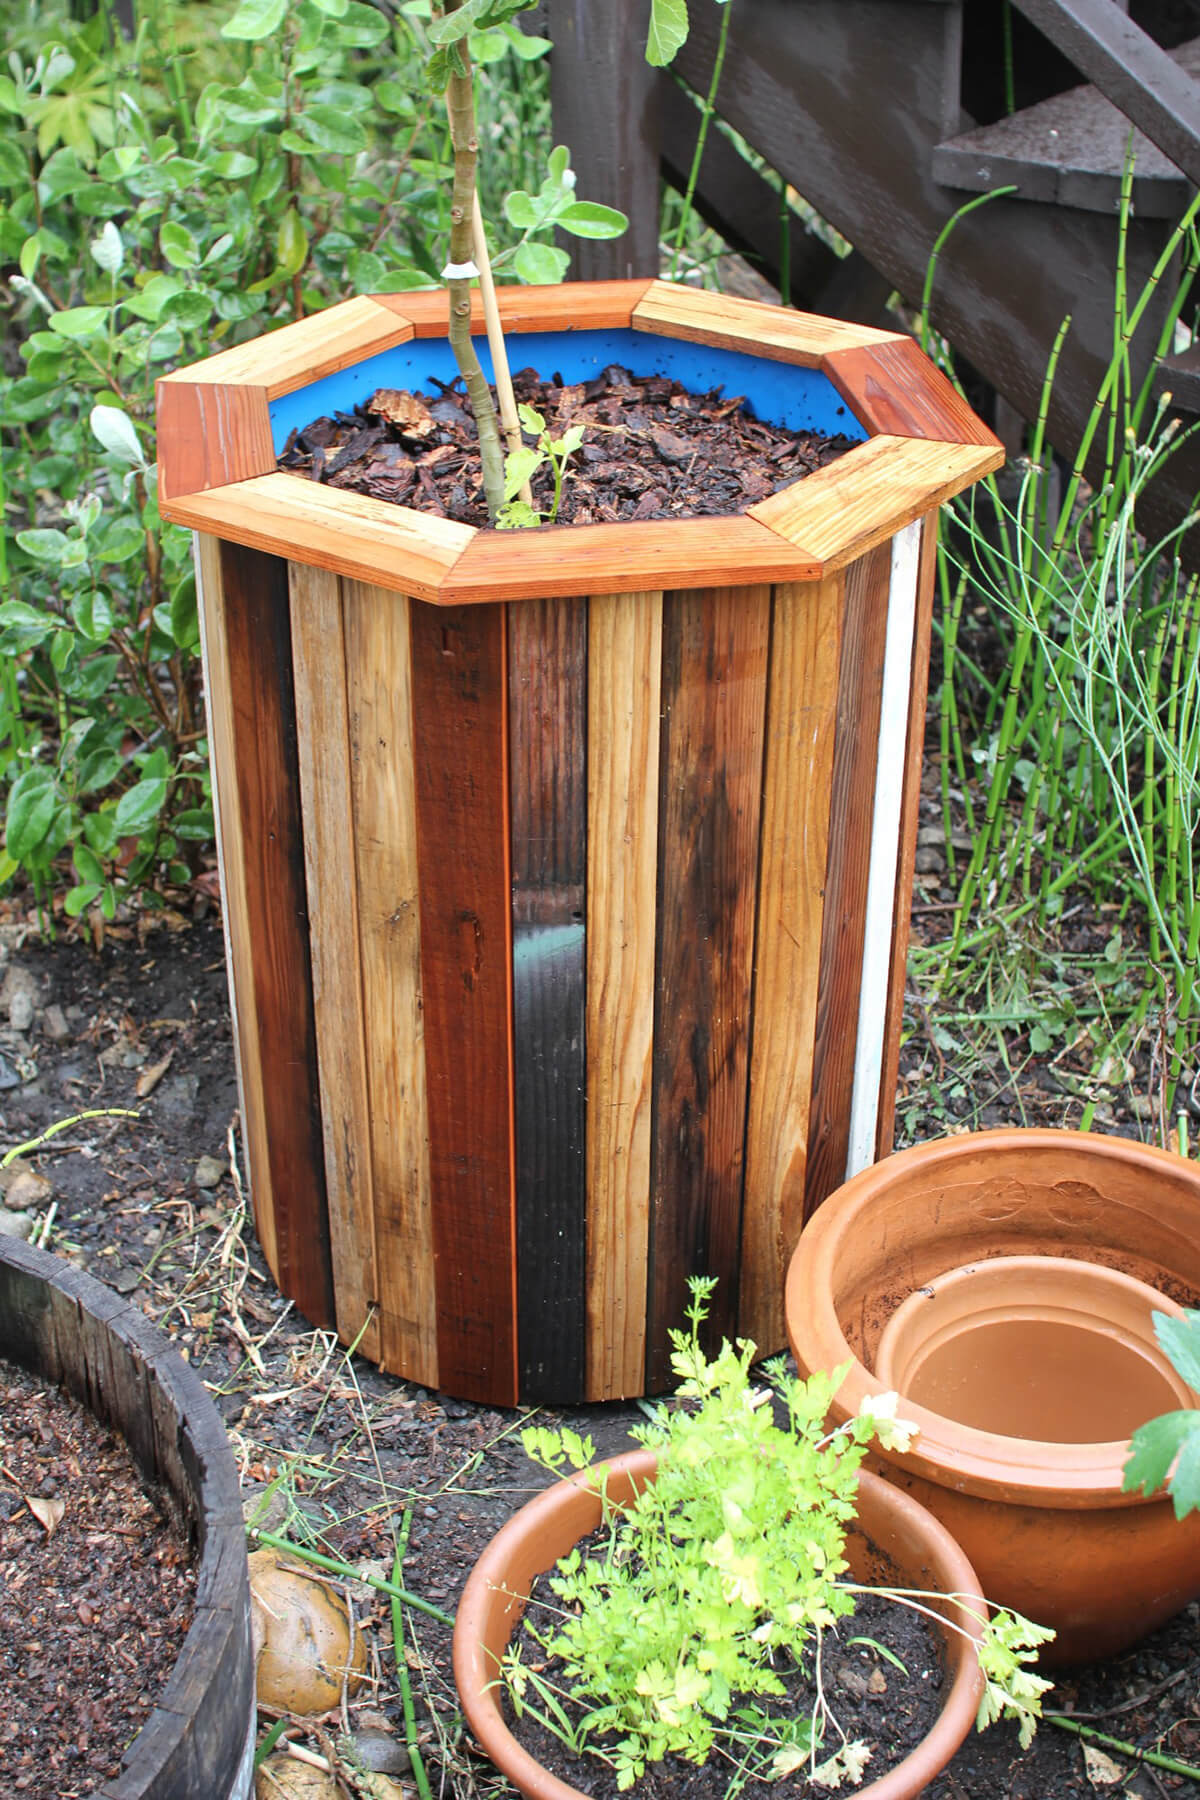 DIY Octagonal Garden Planter Project